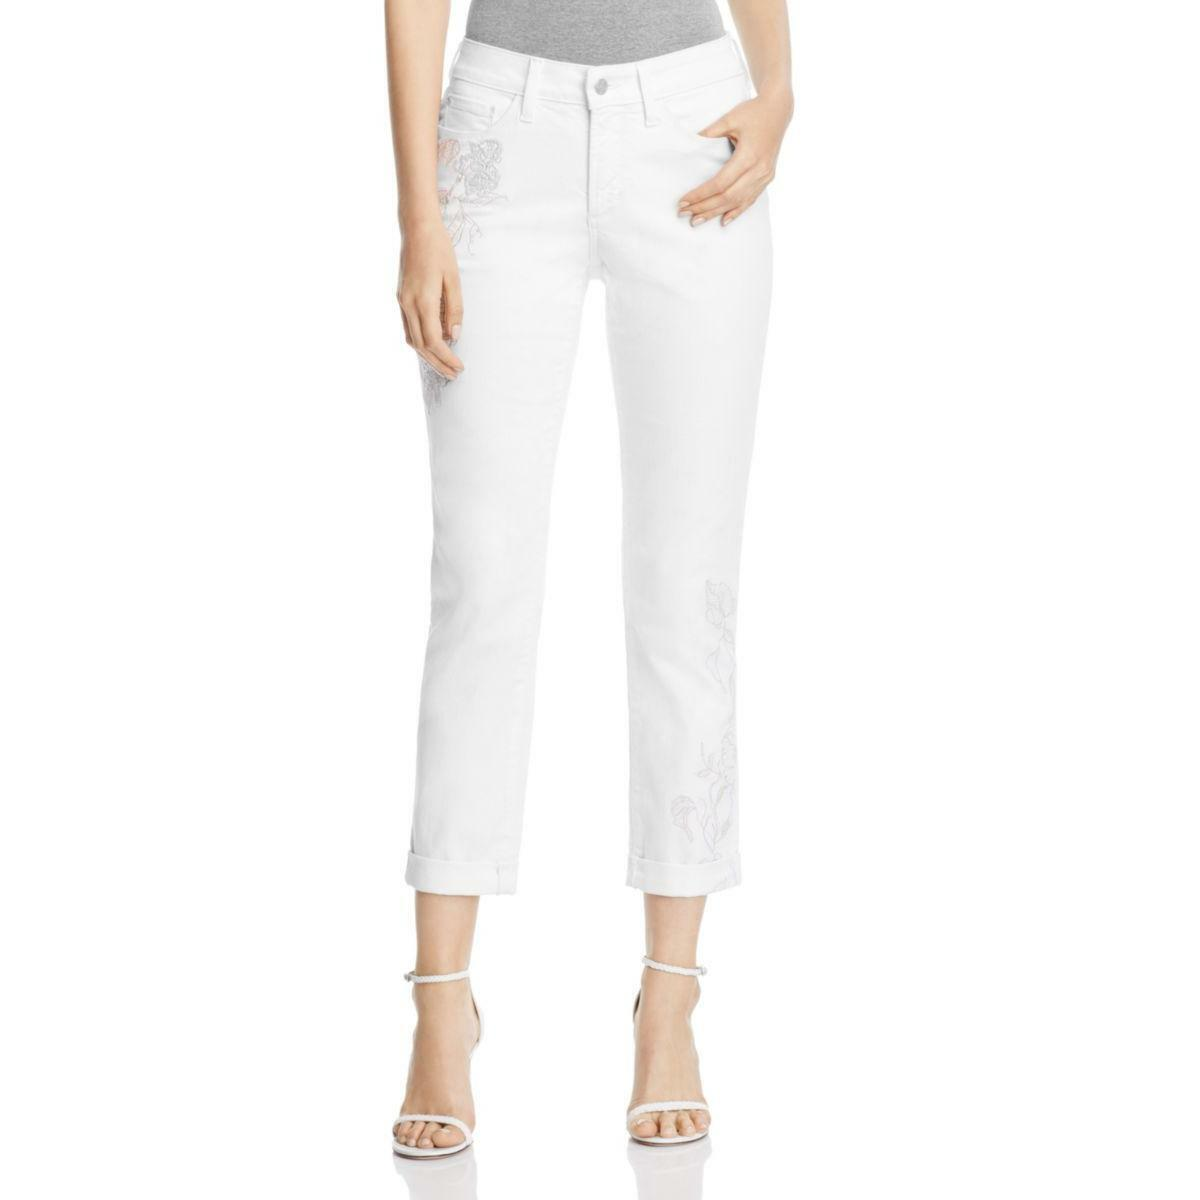 NYDJ Womens Jessica White Everyday Casual Boyfriend Jeans Petites 14P BHFO 5496